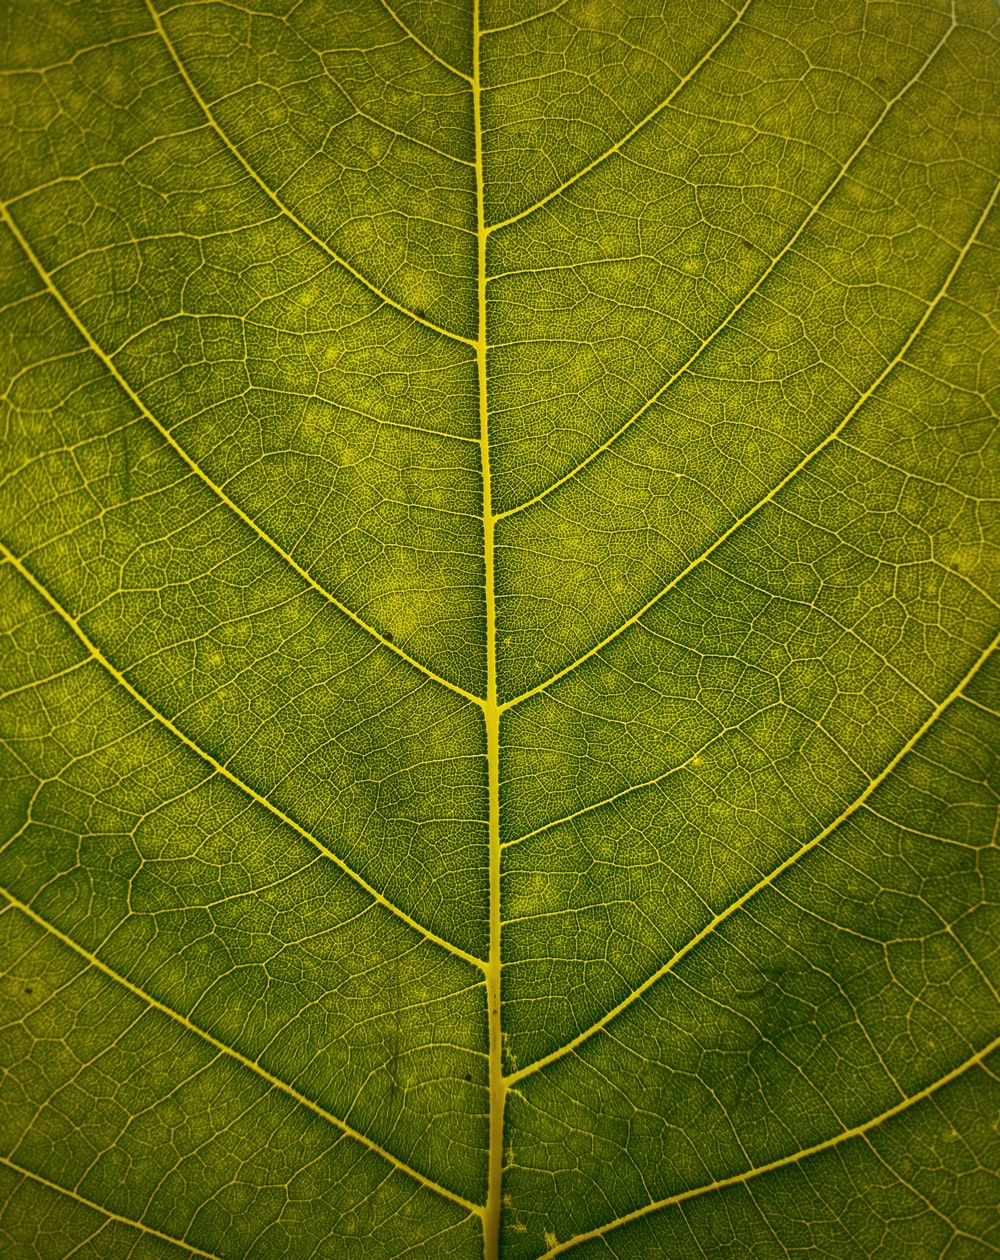 macro shot of green leaf